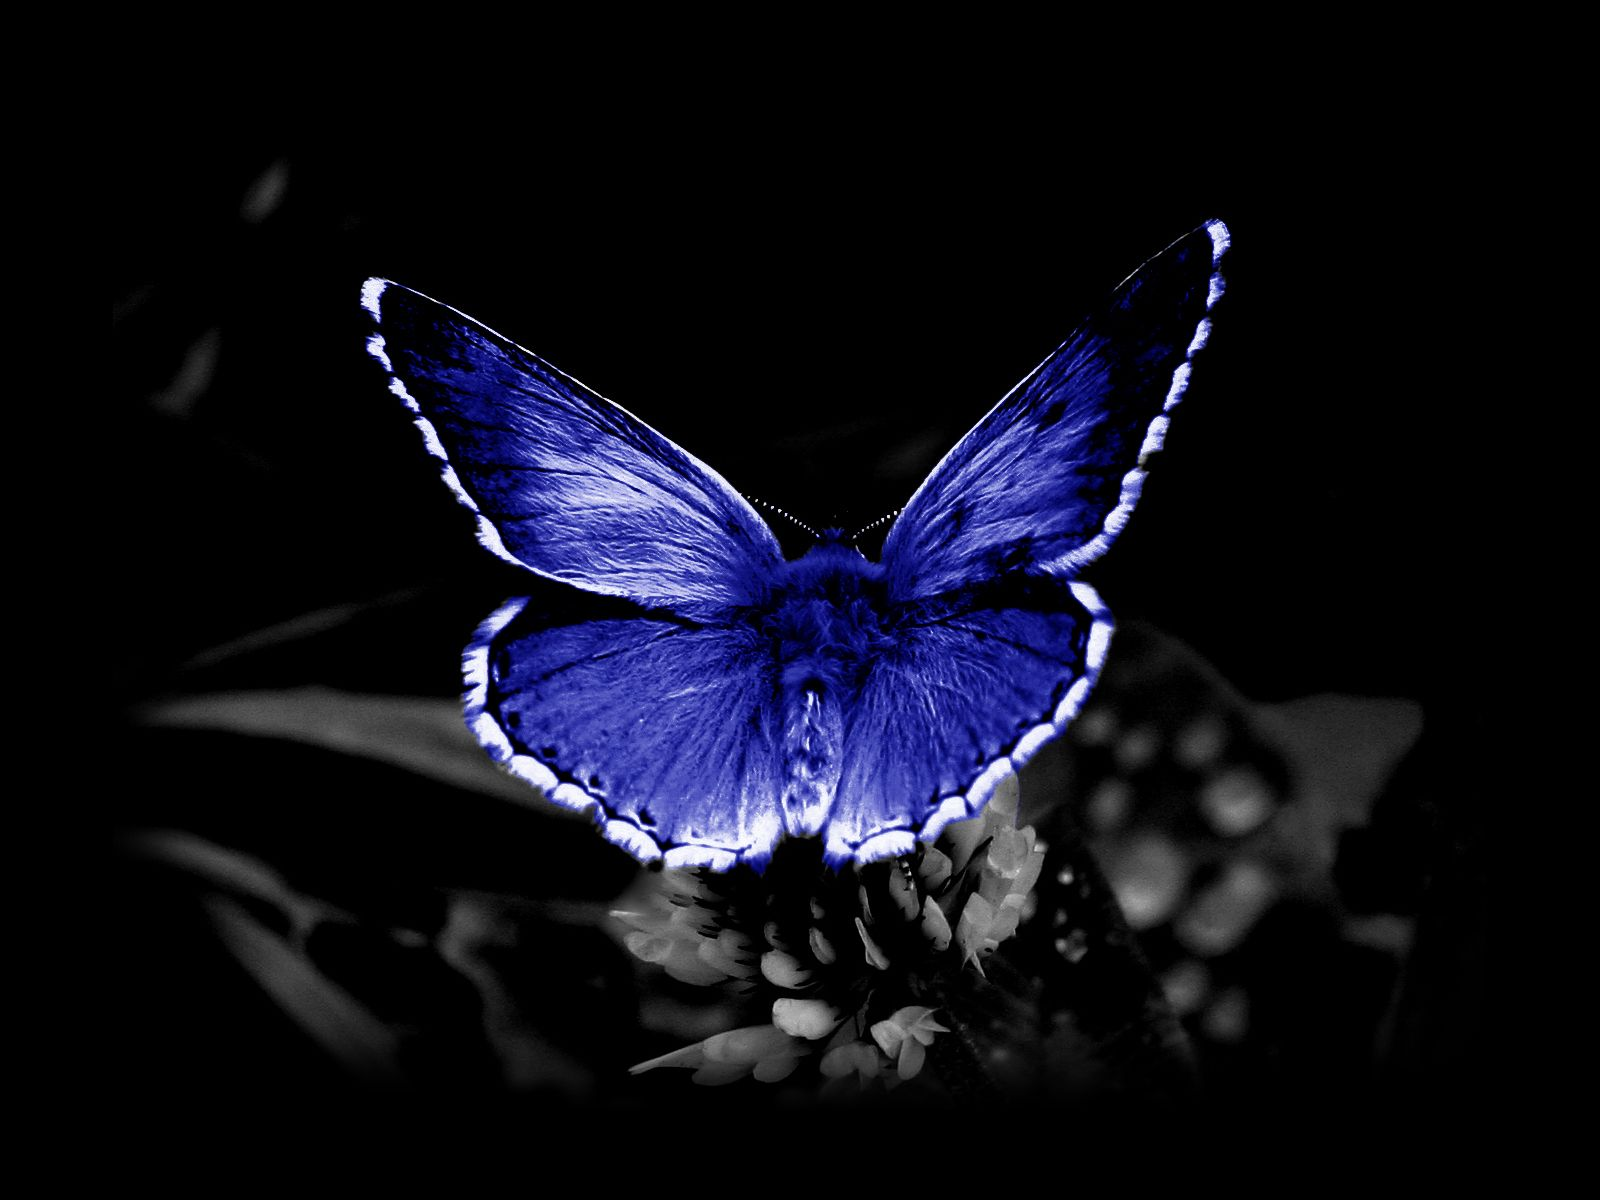 Endangered blue butterfly on black background butterfly on a flower butterflies wallpaper primary category animals